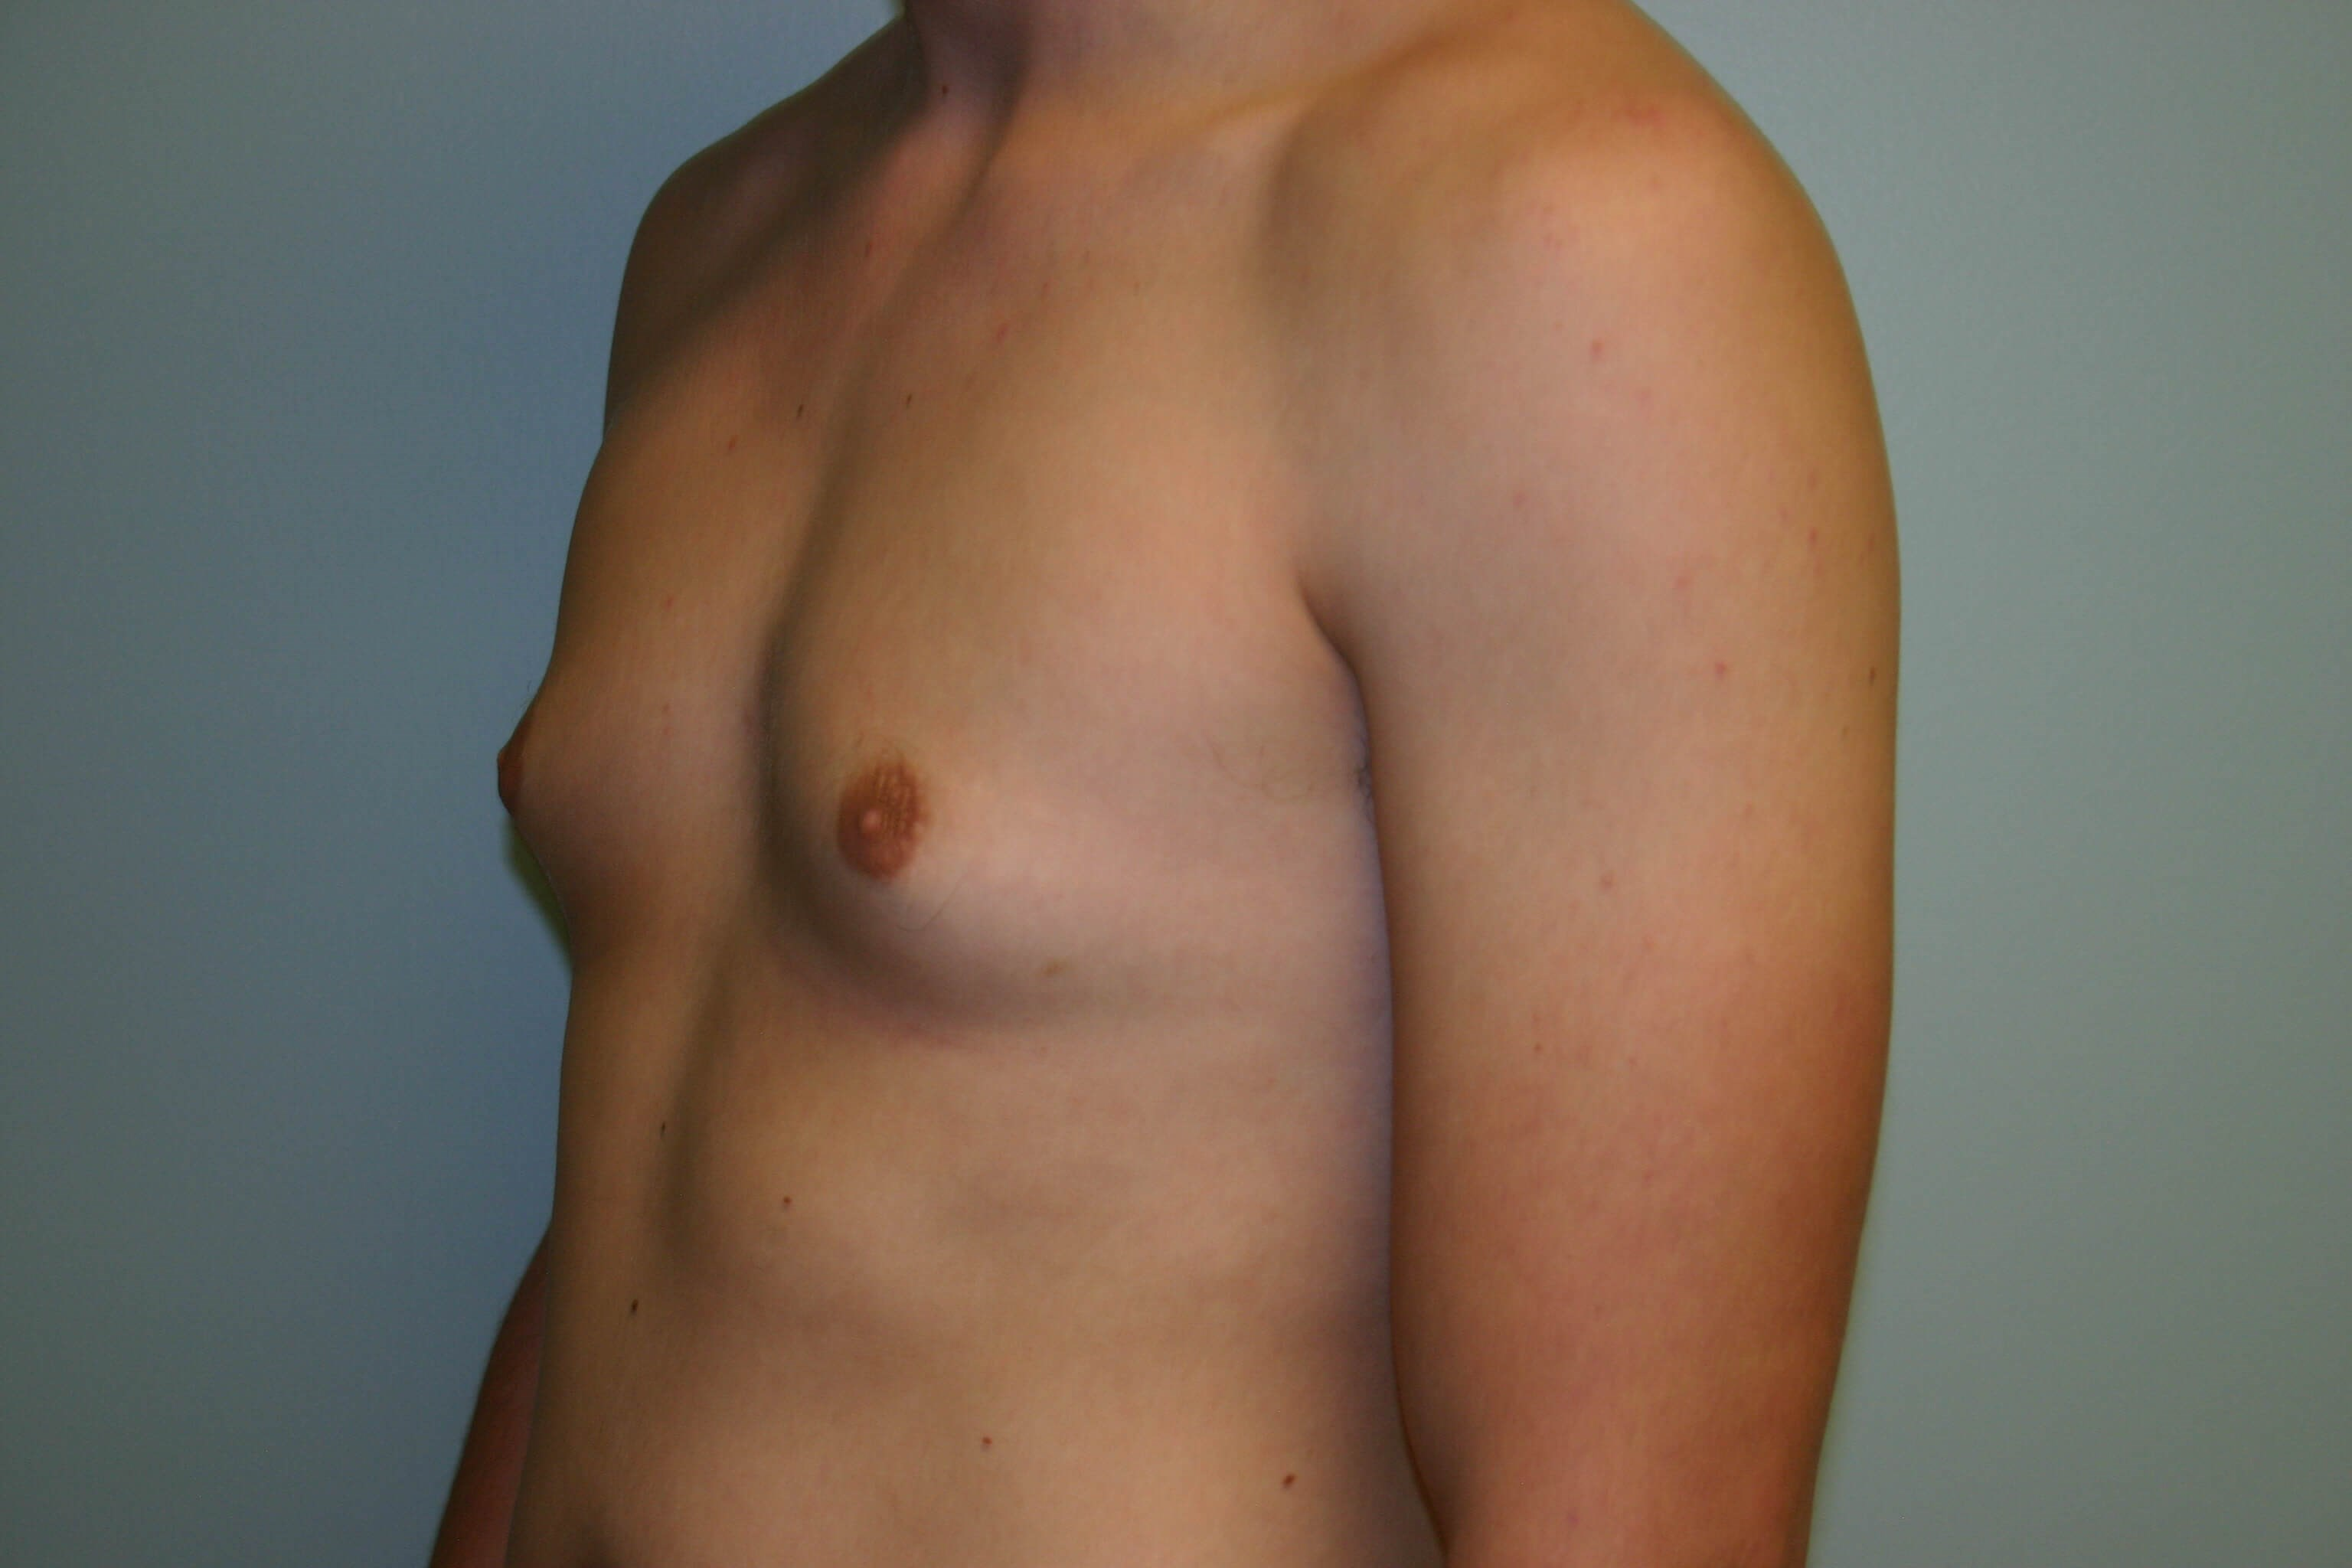 3 Months Post-Op Gynecomastia Before